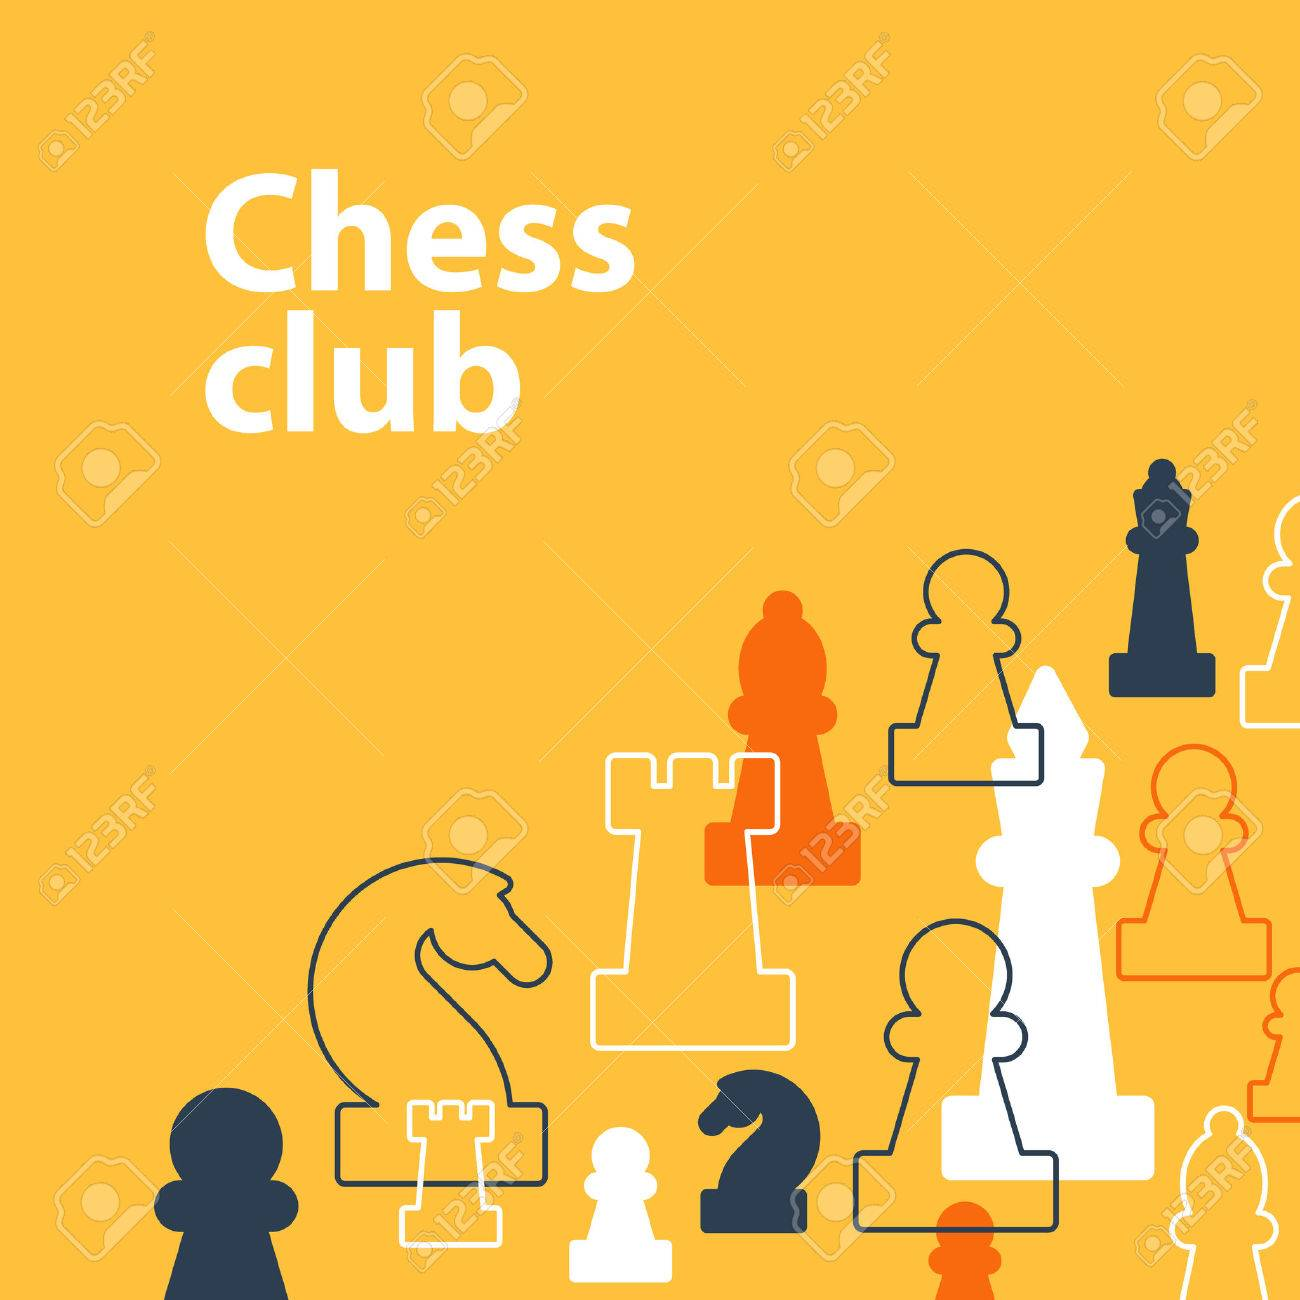 Template with chess pieces. Chess club or school, competition or strategy concept. - 49575782